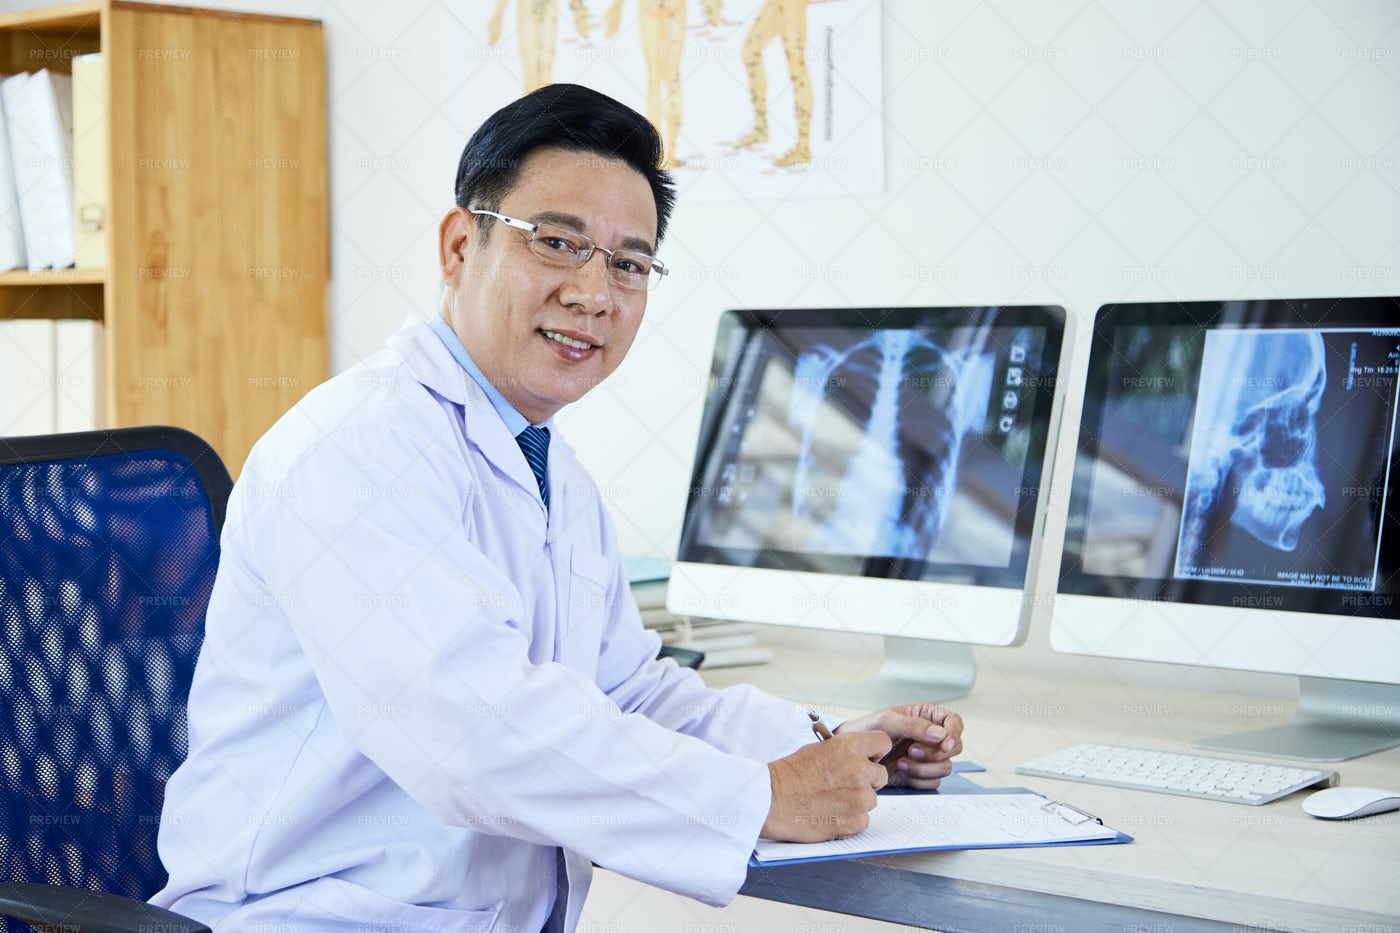 Radiologist Working With X-ray Image: Stock Photos